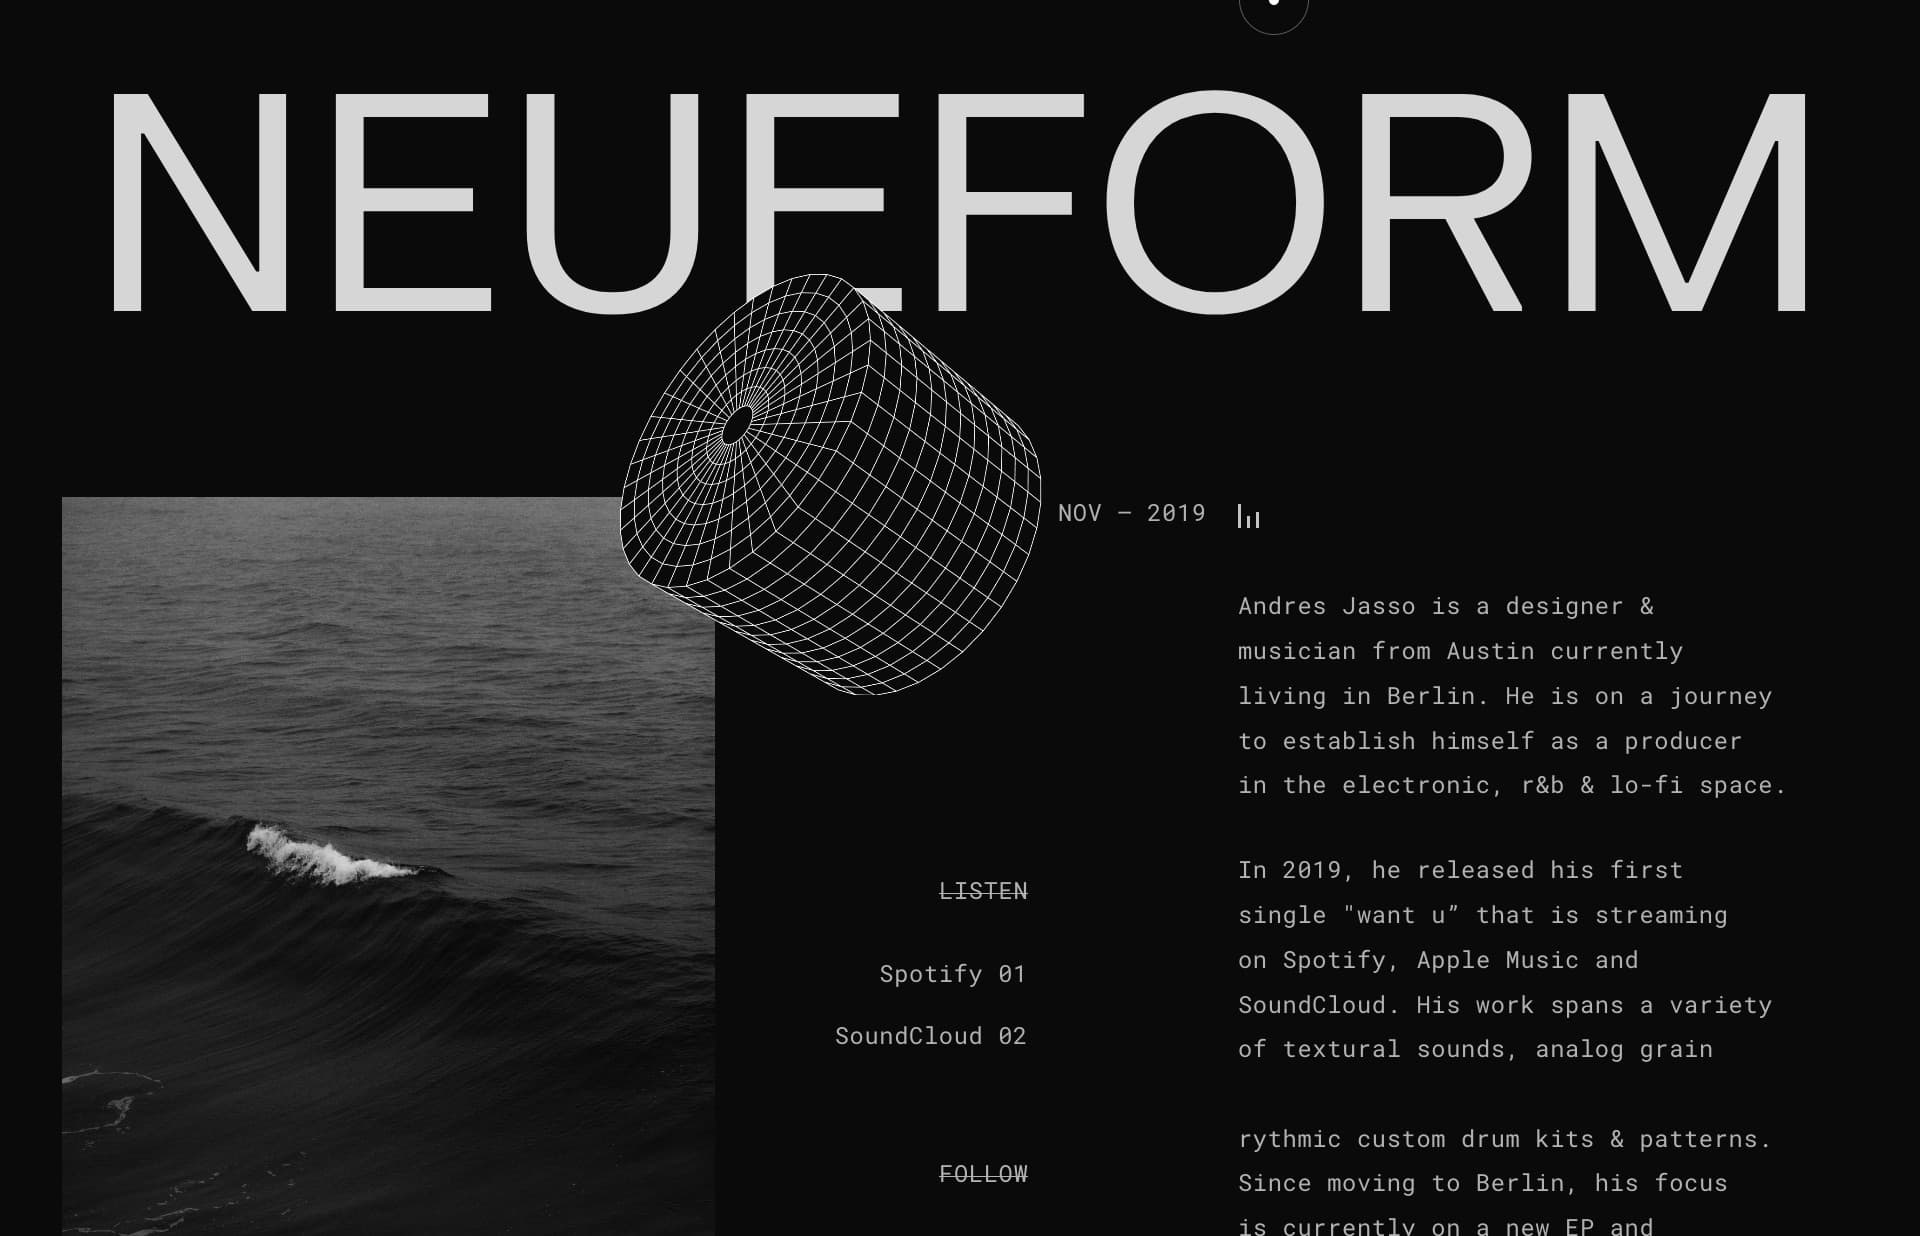 Screenshot of the website Neueform, featured on The Gallery, a curated collection of minimal websites